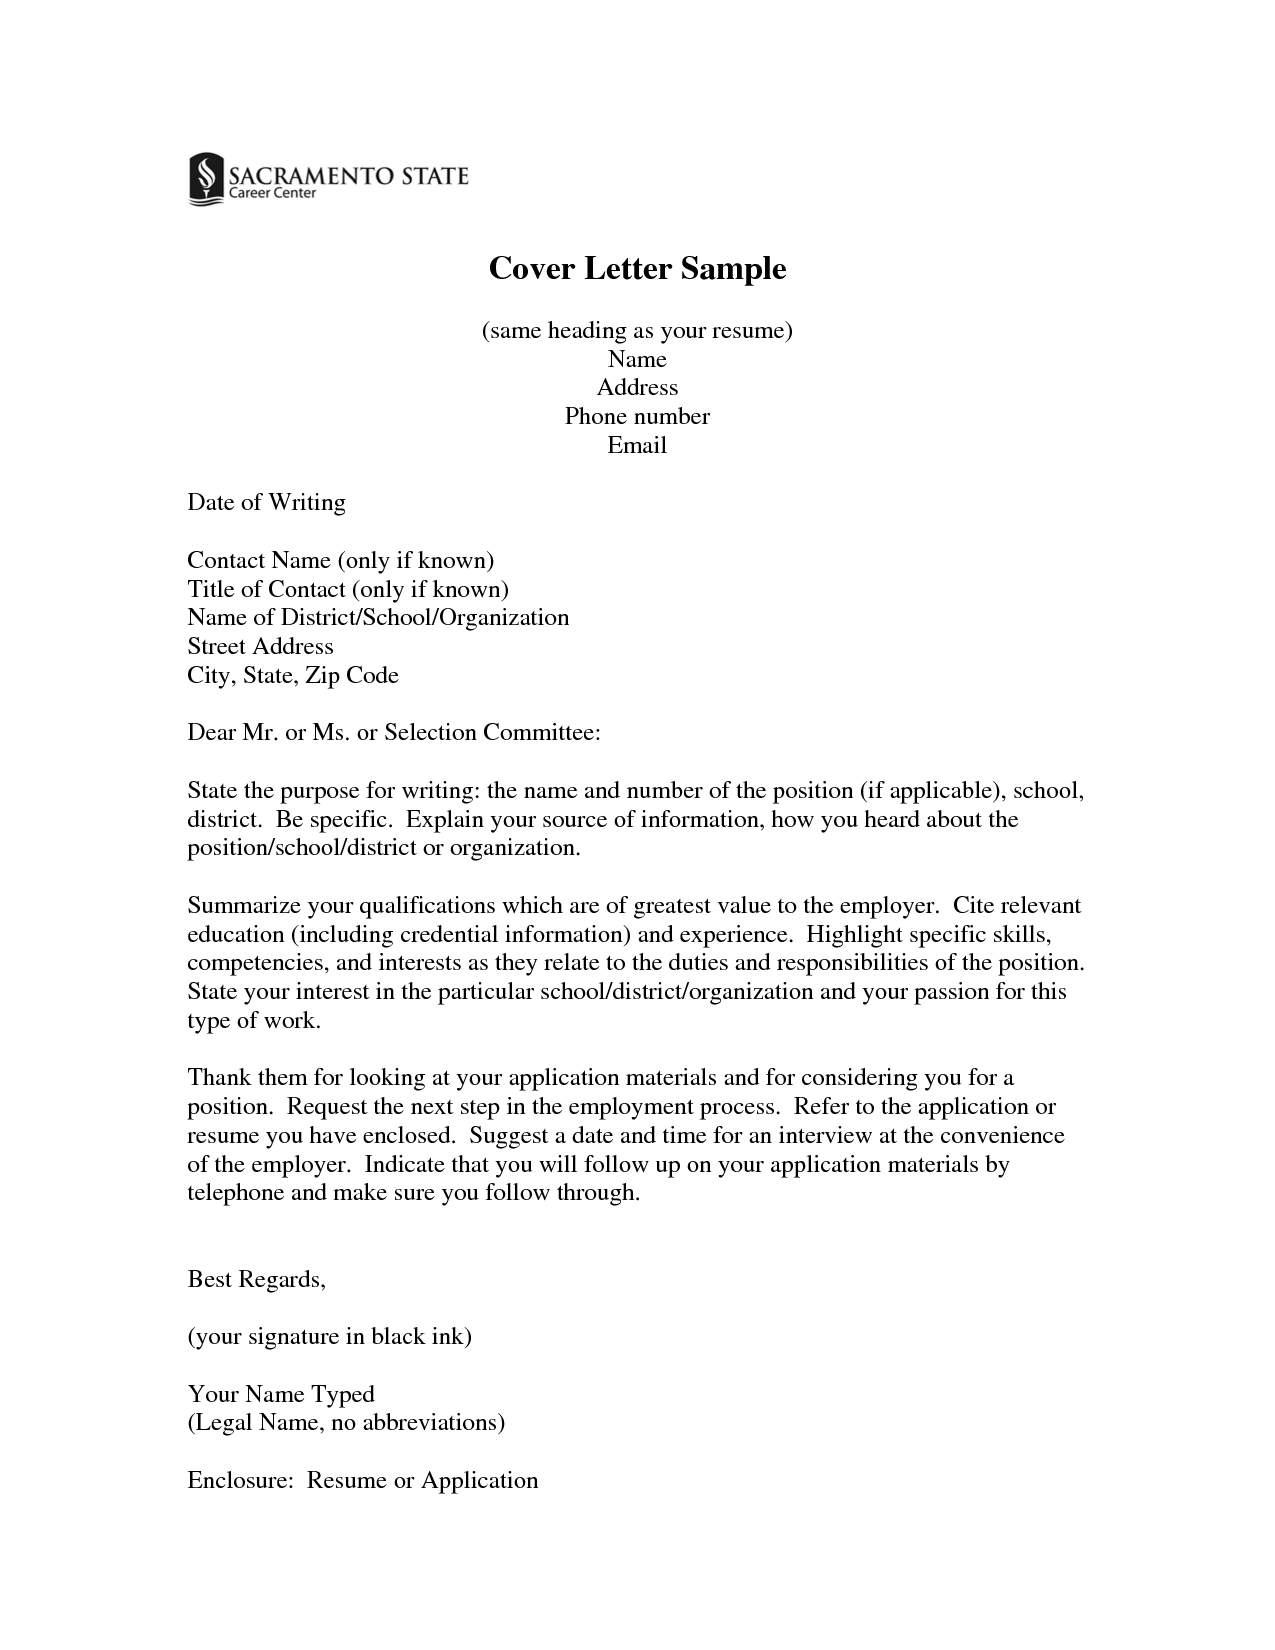 Same Cover Letters For Resume | Cover Letter Sample Same Heading As Your  Resume Name Address  Writing A Resume Cover Letter